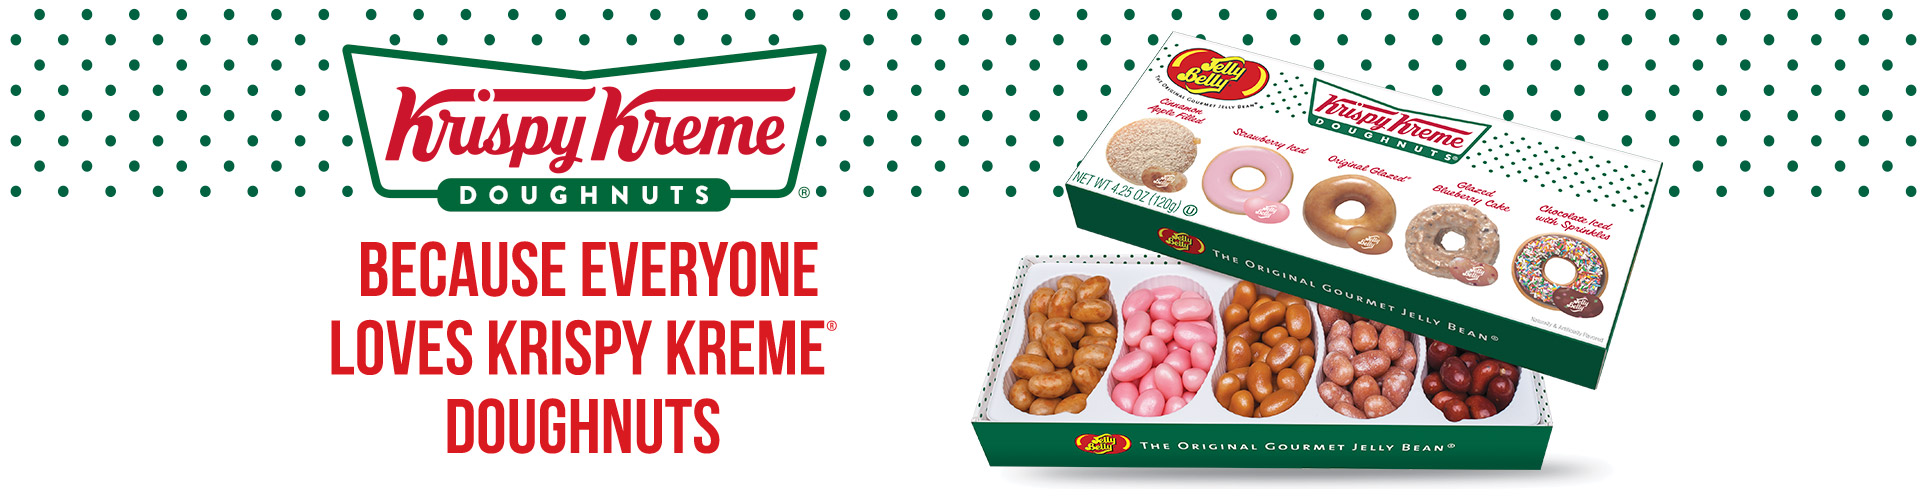 Krispy Kreme Doughnuts Logo with Krispy Kreme Doughnuts Jelly Beans Mix 4.25 oz. Gift Box and caption: Because everyone loves Kripsy Kreme doughnuts